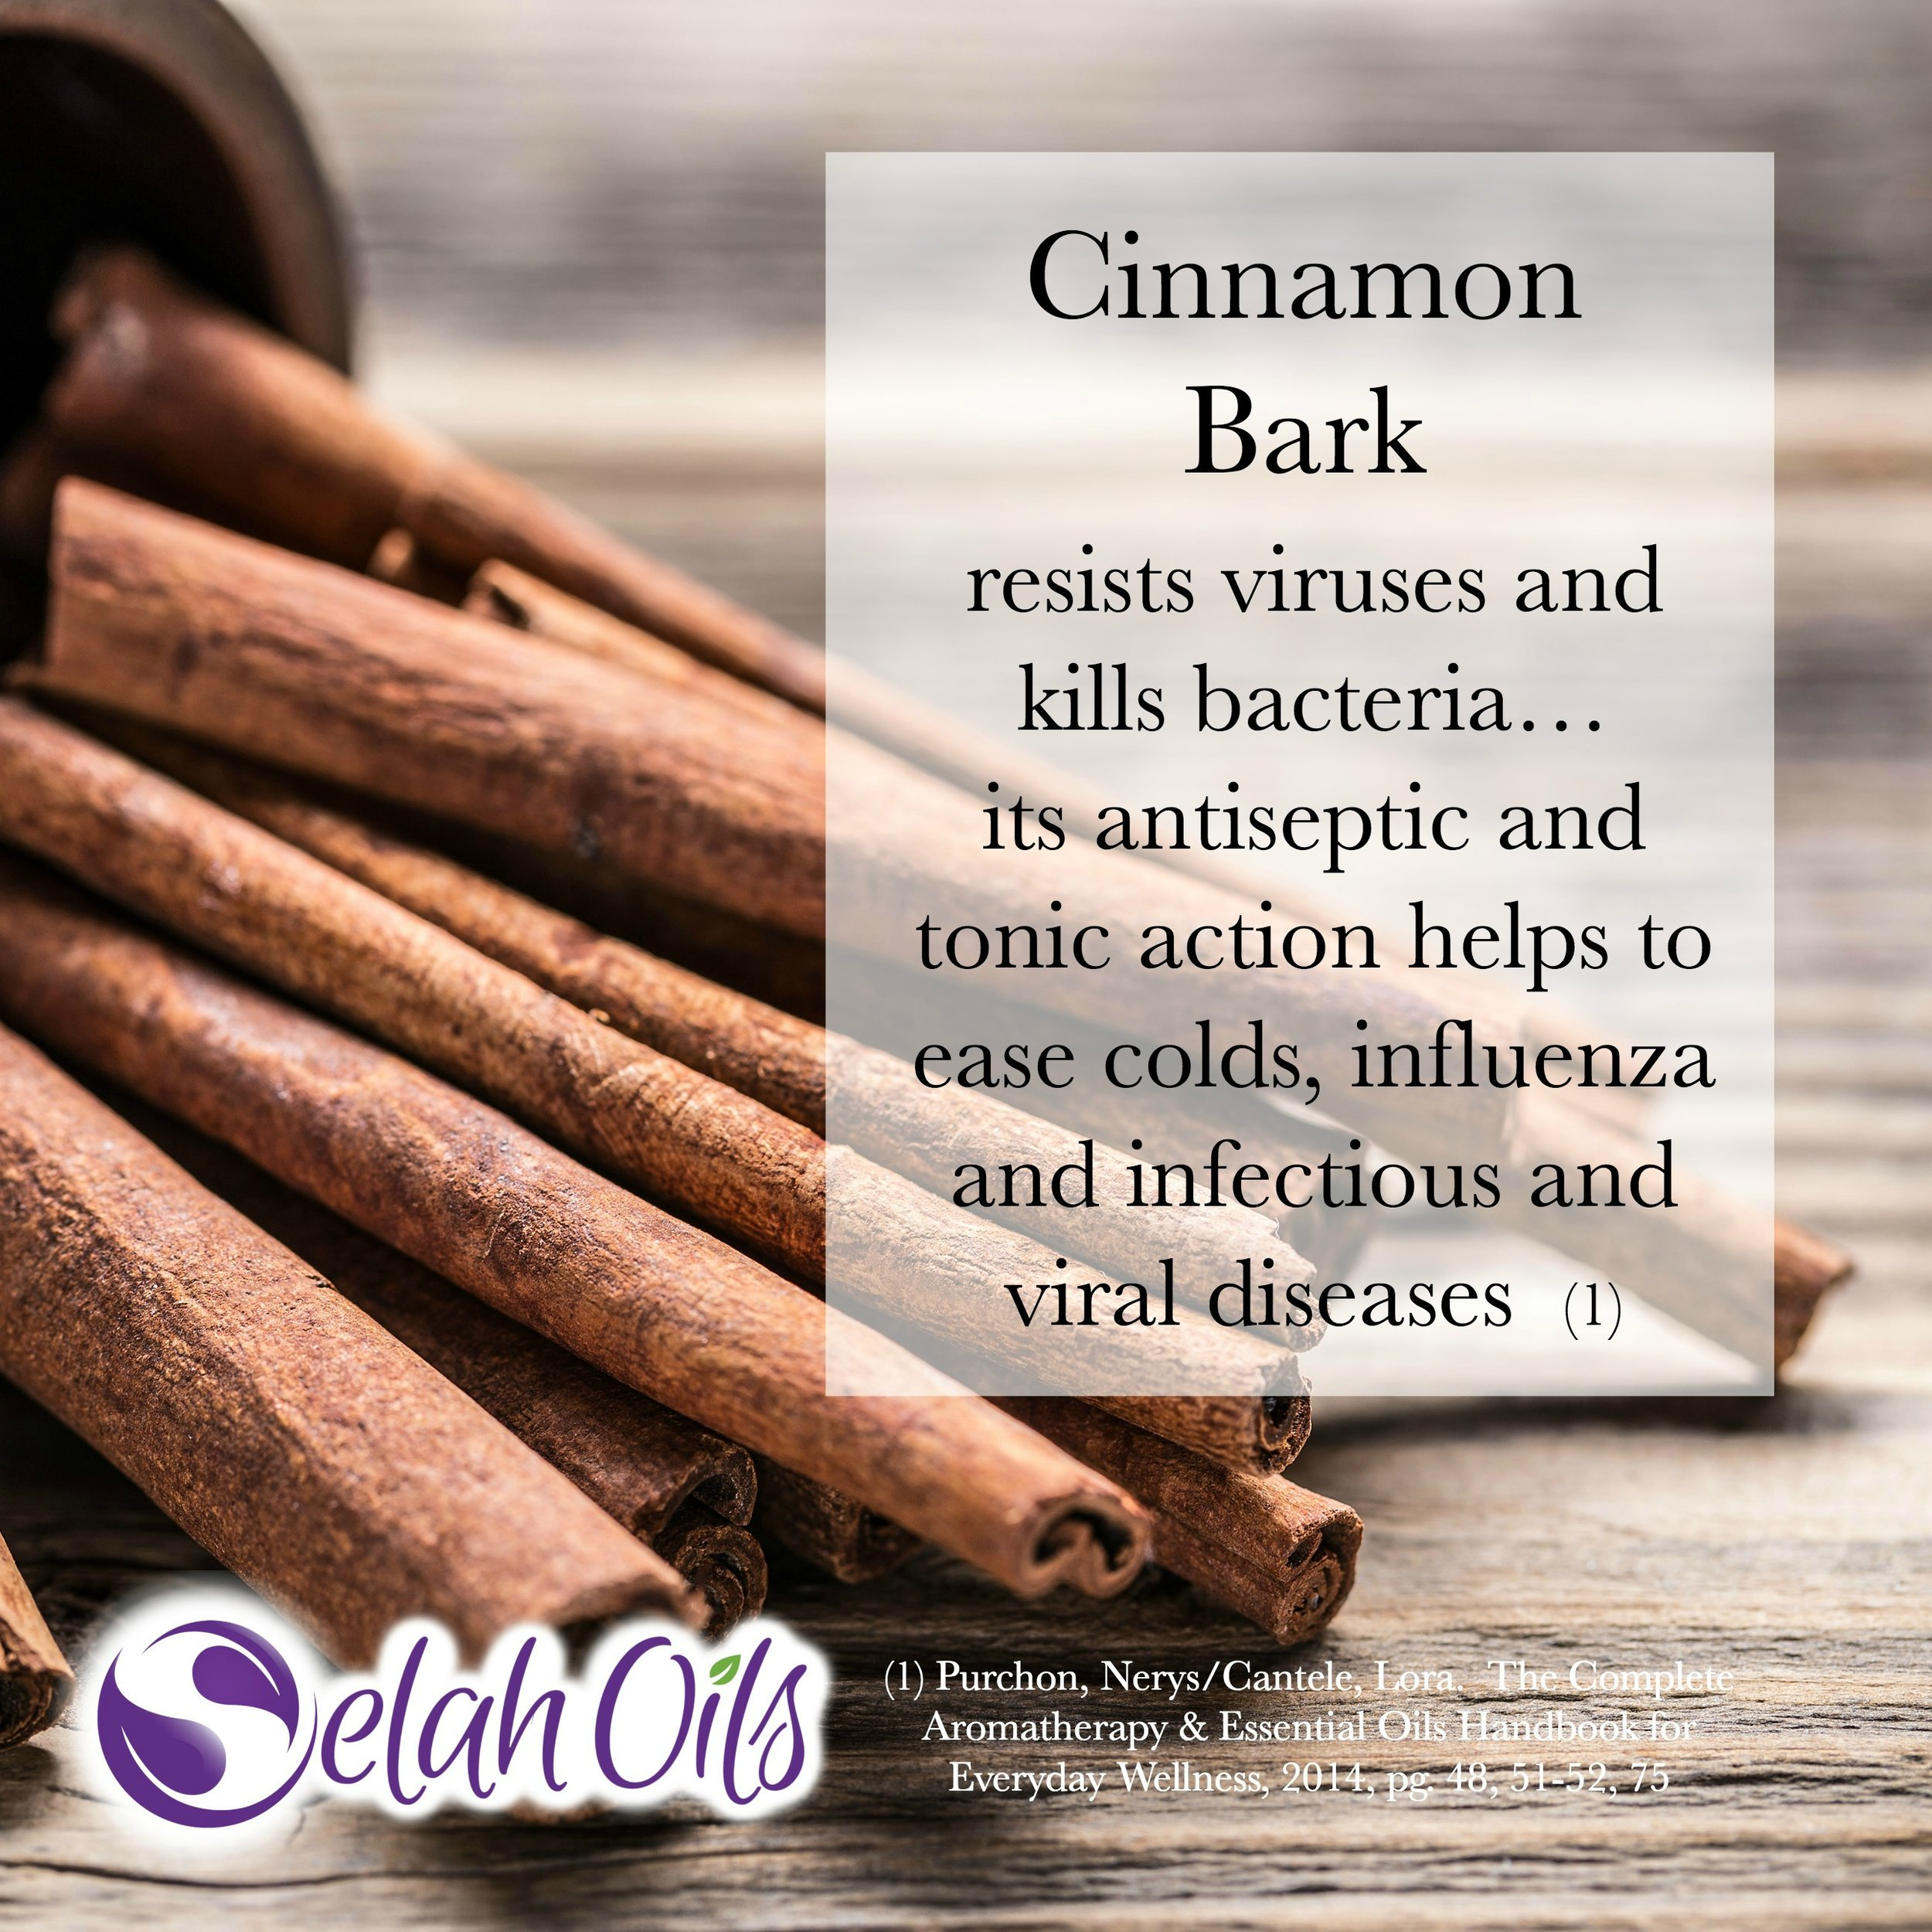 Cinnamon Bark Benefits Square.jpg